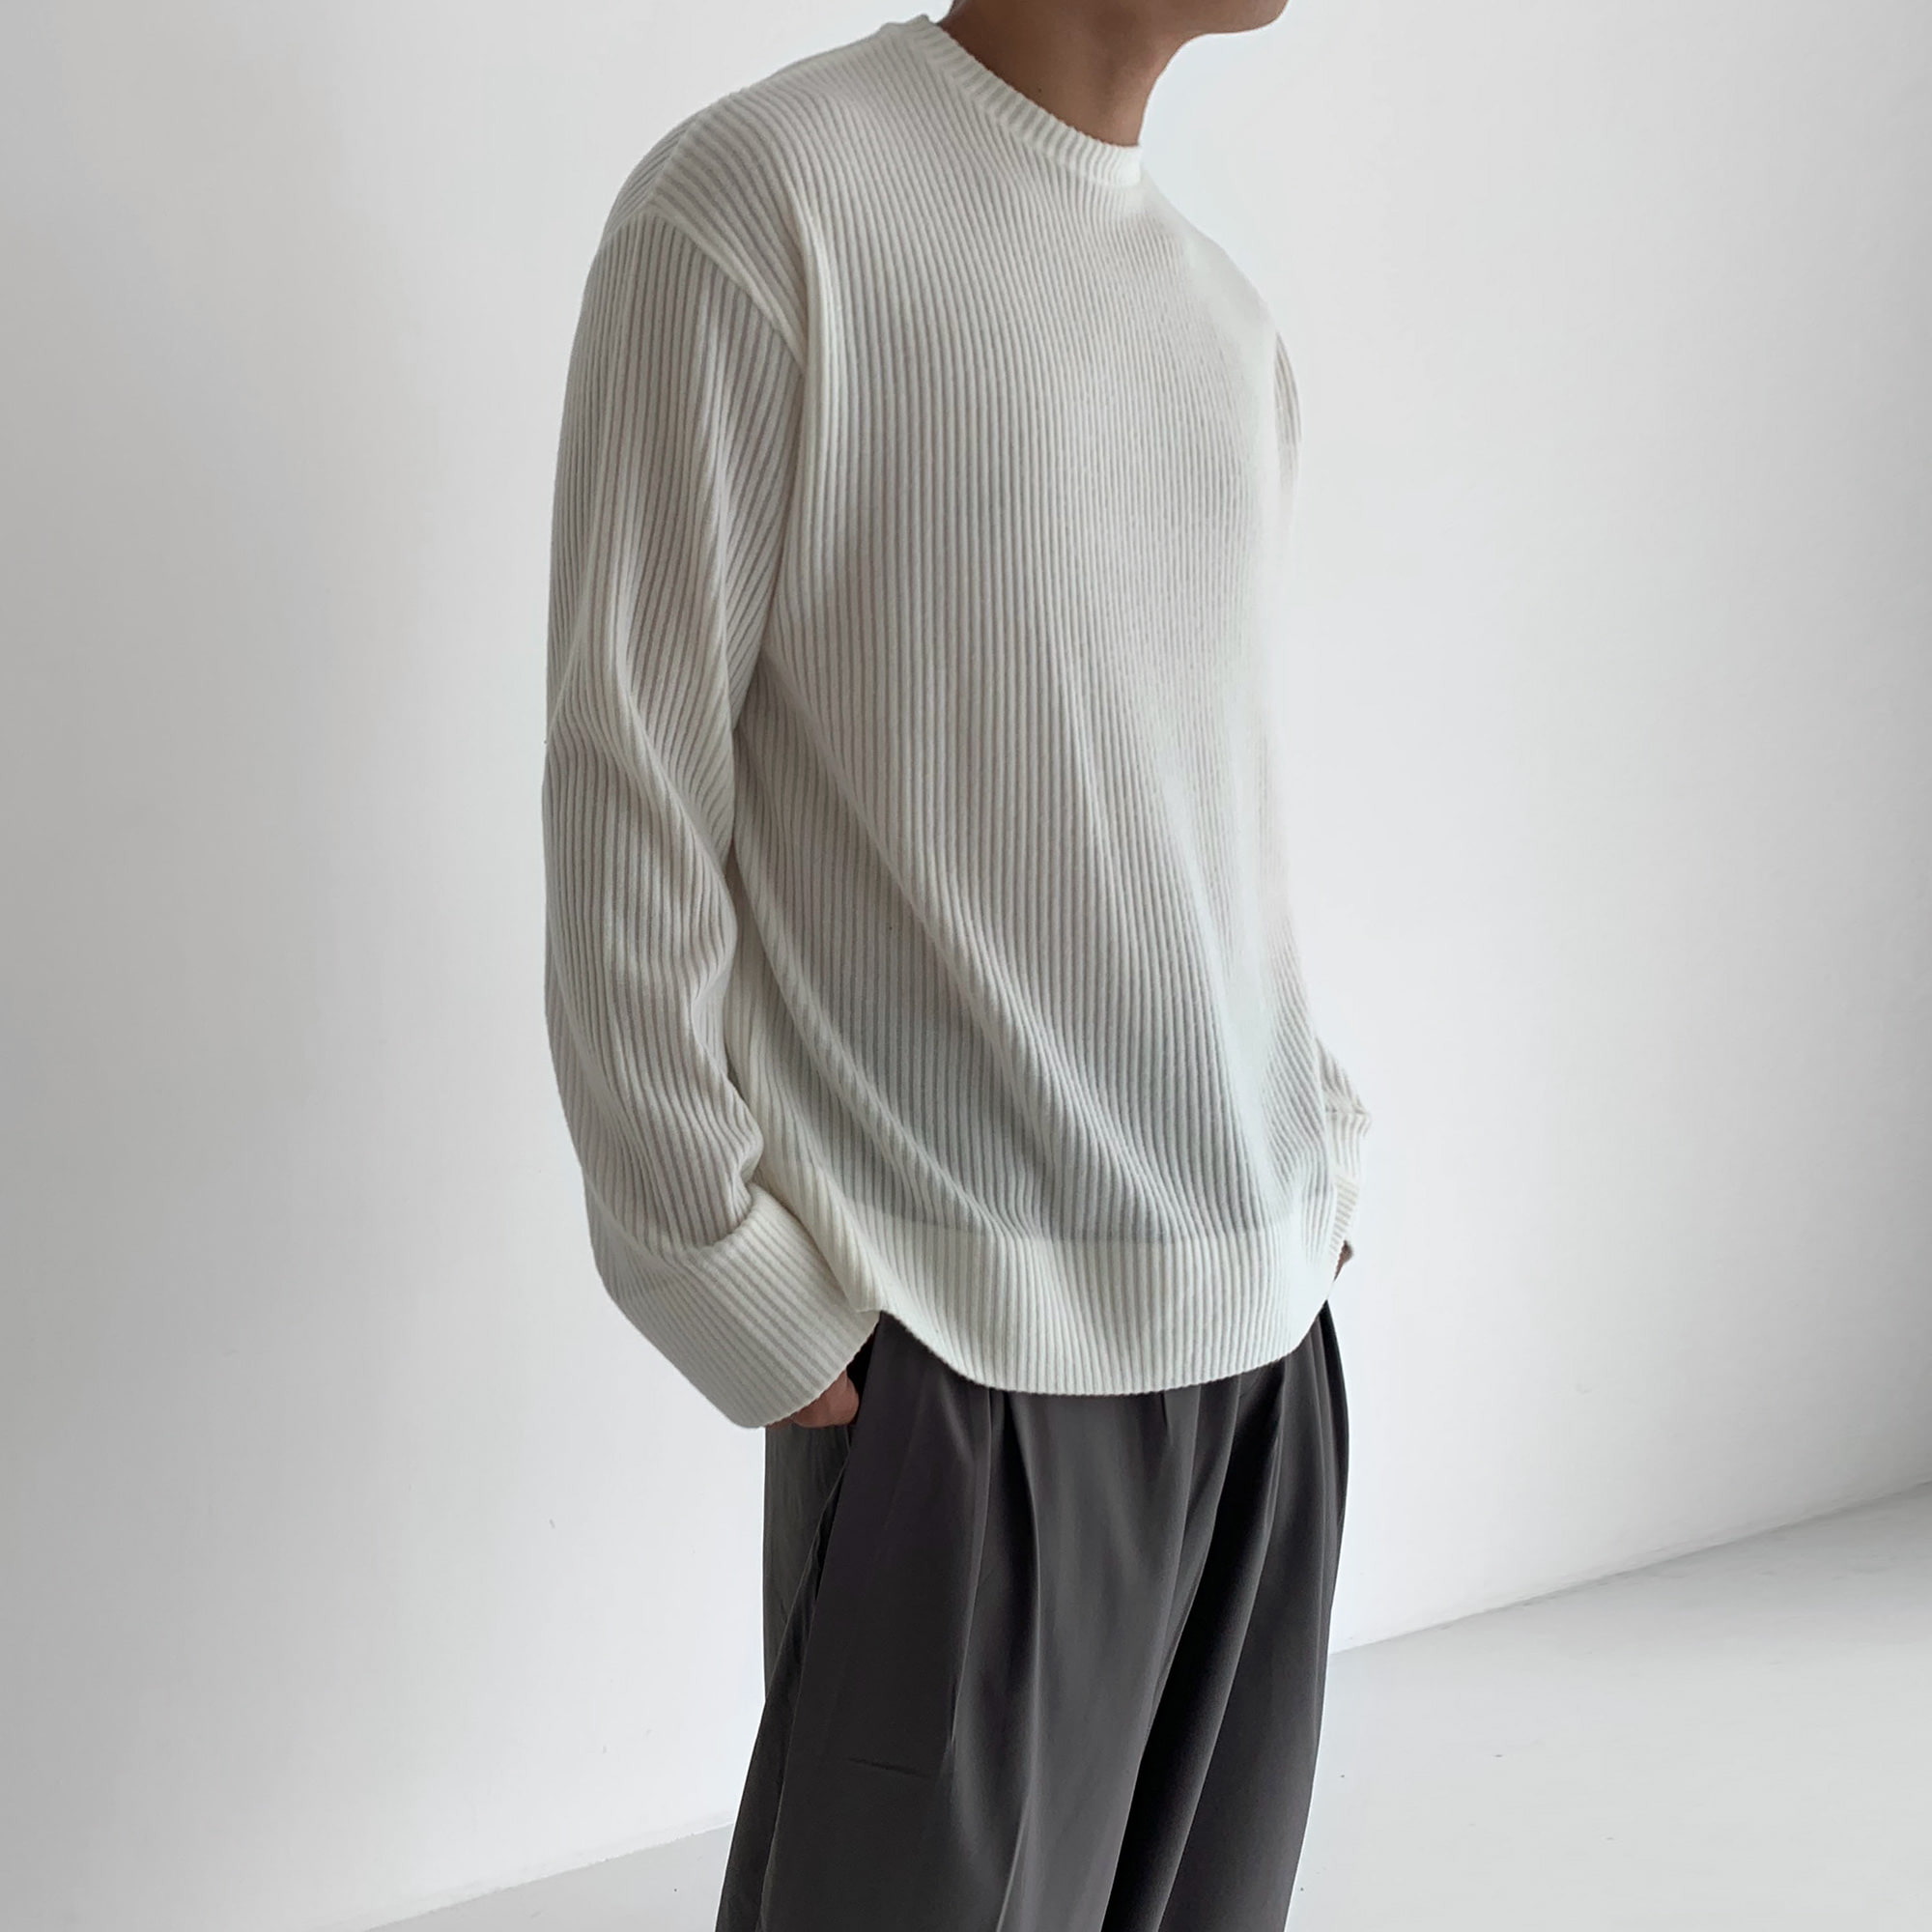 Monotone Ribbed Knit Tee (5Color)